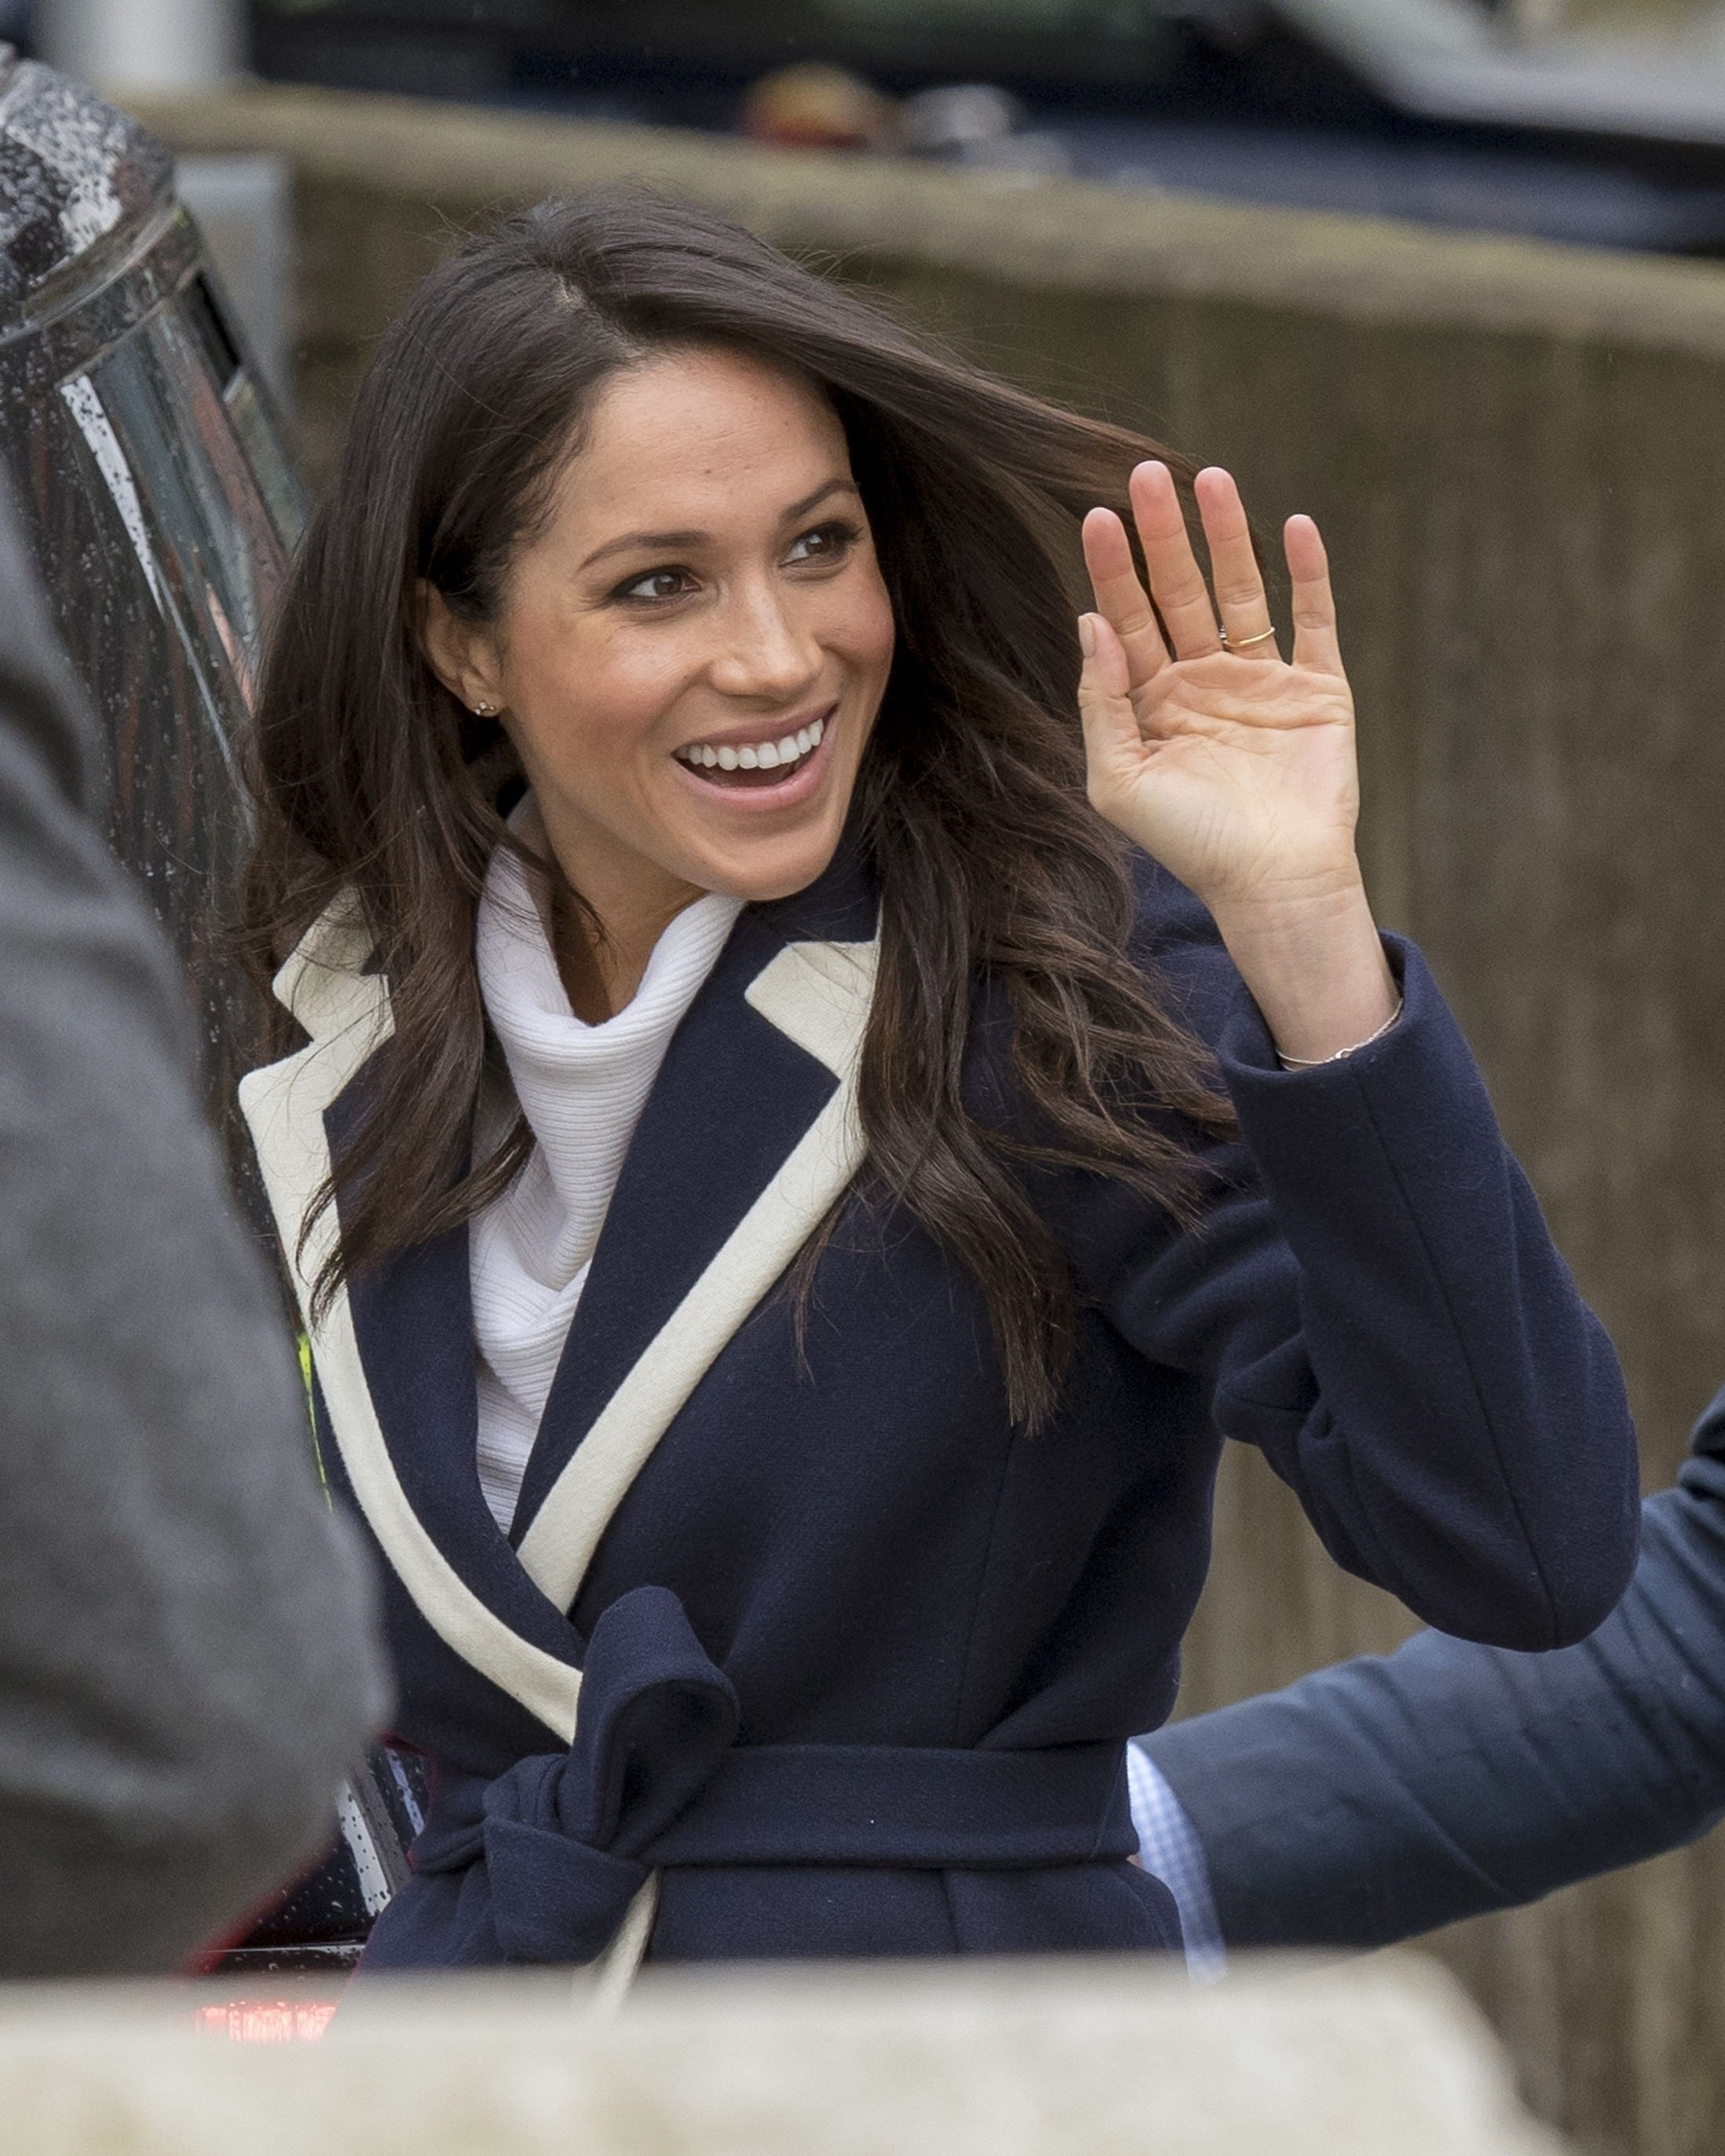 BGUK_1167466 - Birmingham, UNITED KINGDOM  -   Newly engaged Meghan Markle visits Birmingham during International Women's Day 2018  Pictured: Meghan Markle    *UK Clients - Pictures Containing Children Please Pixelate Face Prior To Publication*, Image: 365505405, License: Rights-managed, Restrictions: , Model Release: no, Credit line: Profimedia, Xposurephotos